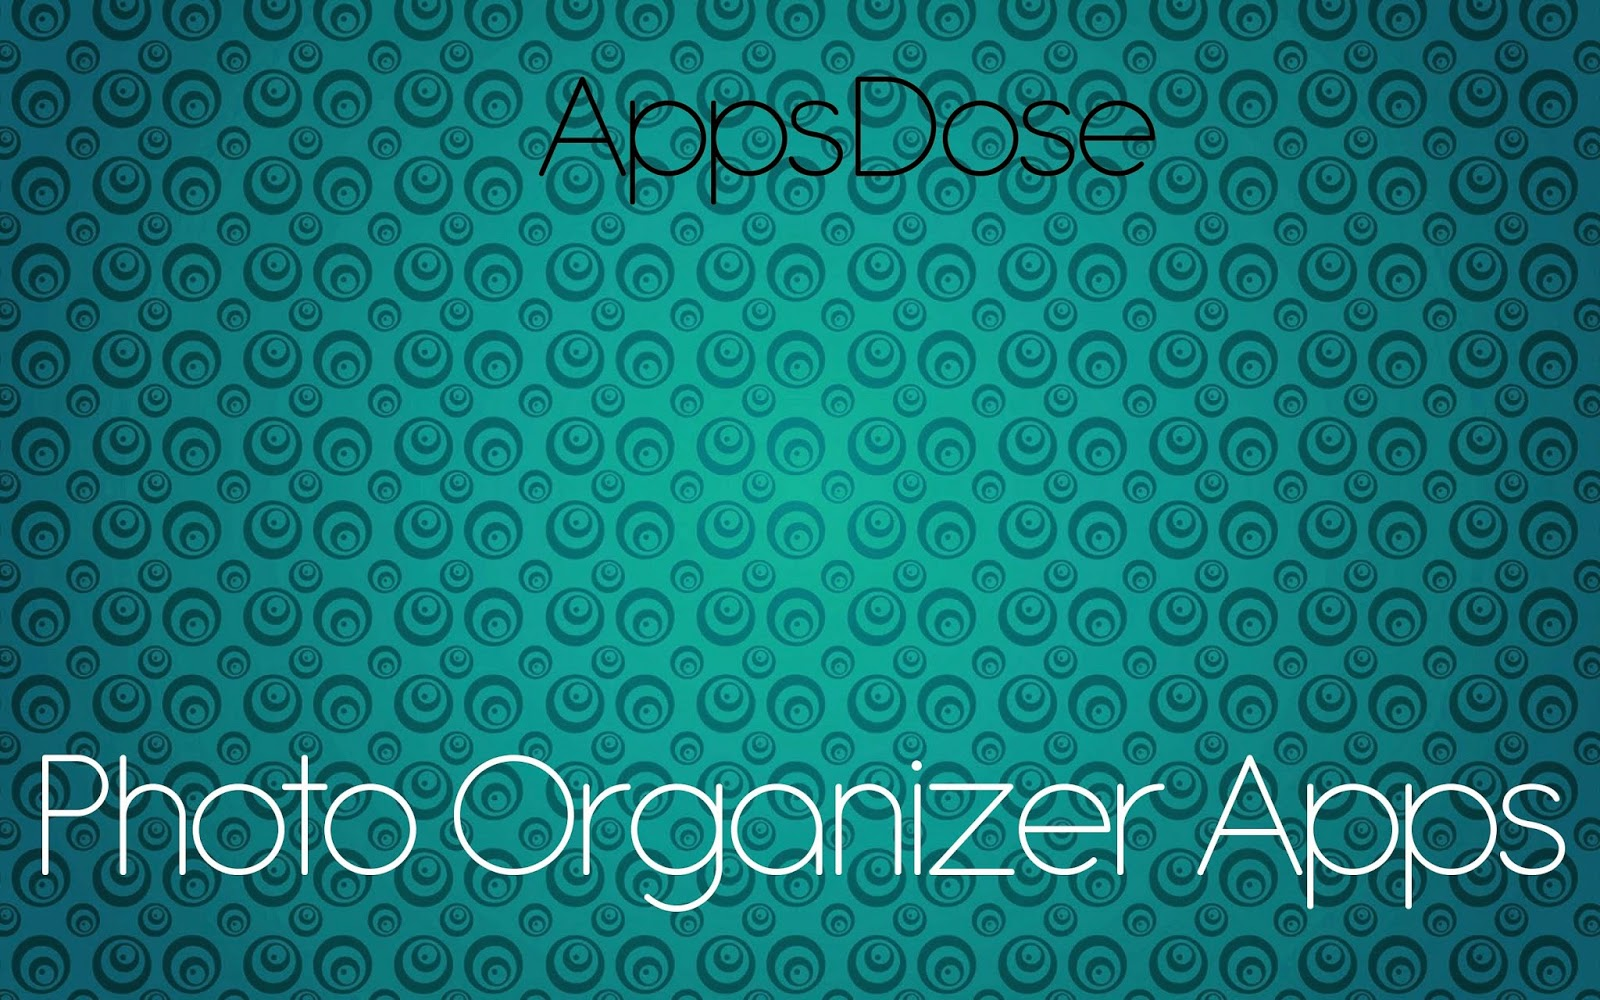 Best apps to organize photos on iPhone and iPad